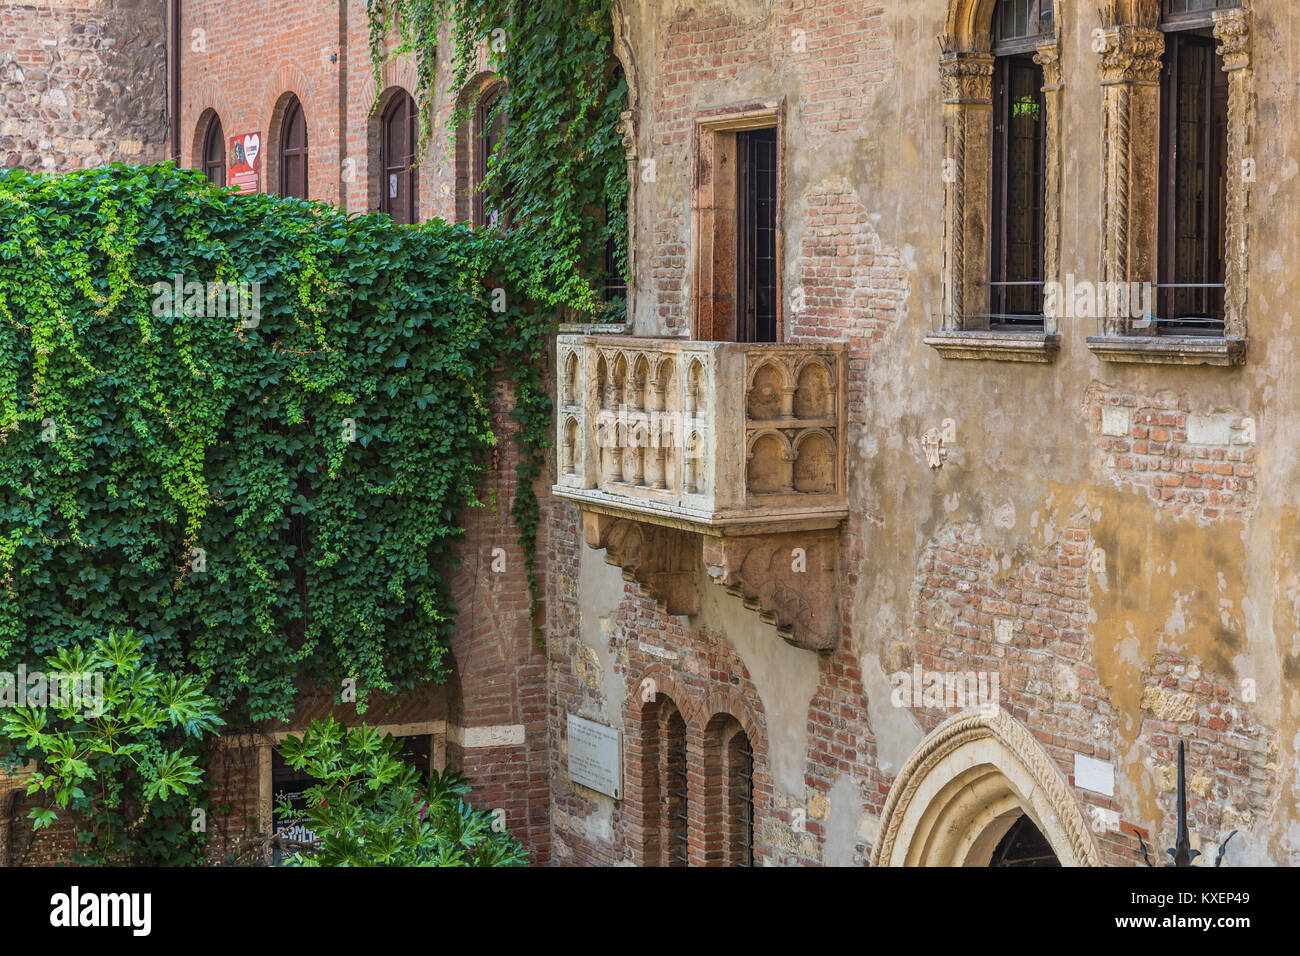 Balcony at the House of Julia, Casa di Giulietta, Via Cappello, Verona, Veneto, Italy Stock Photo